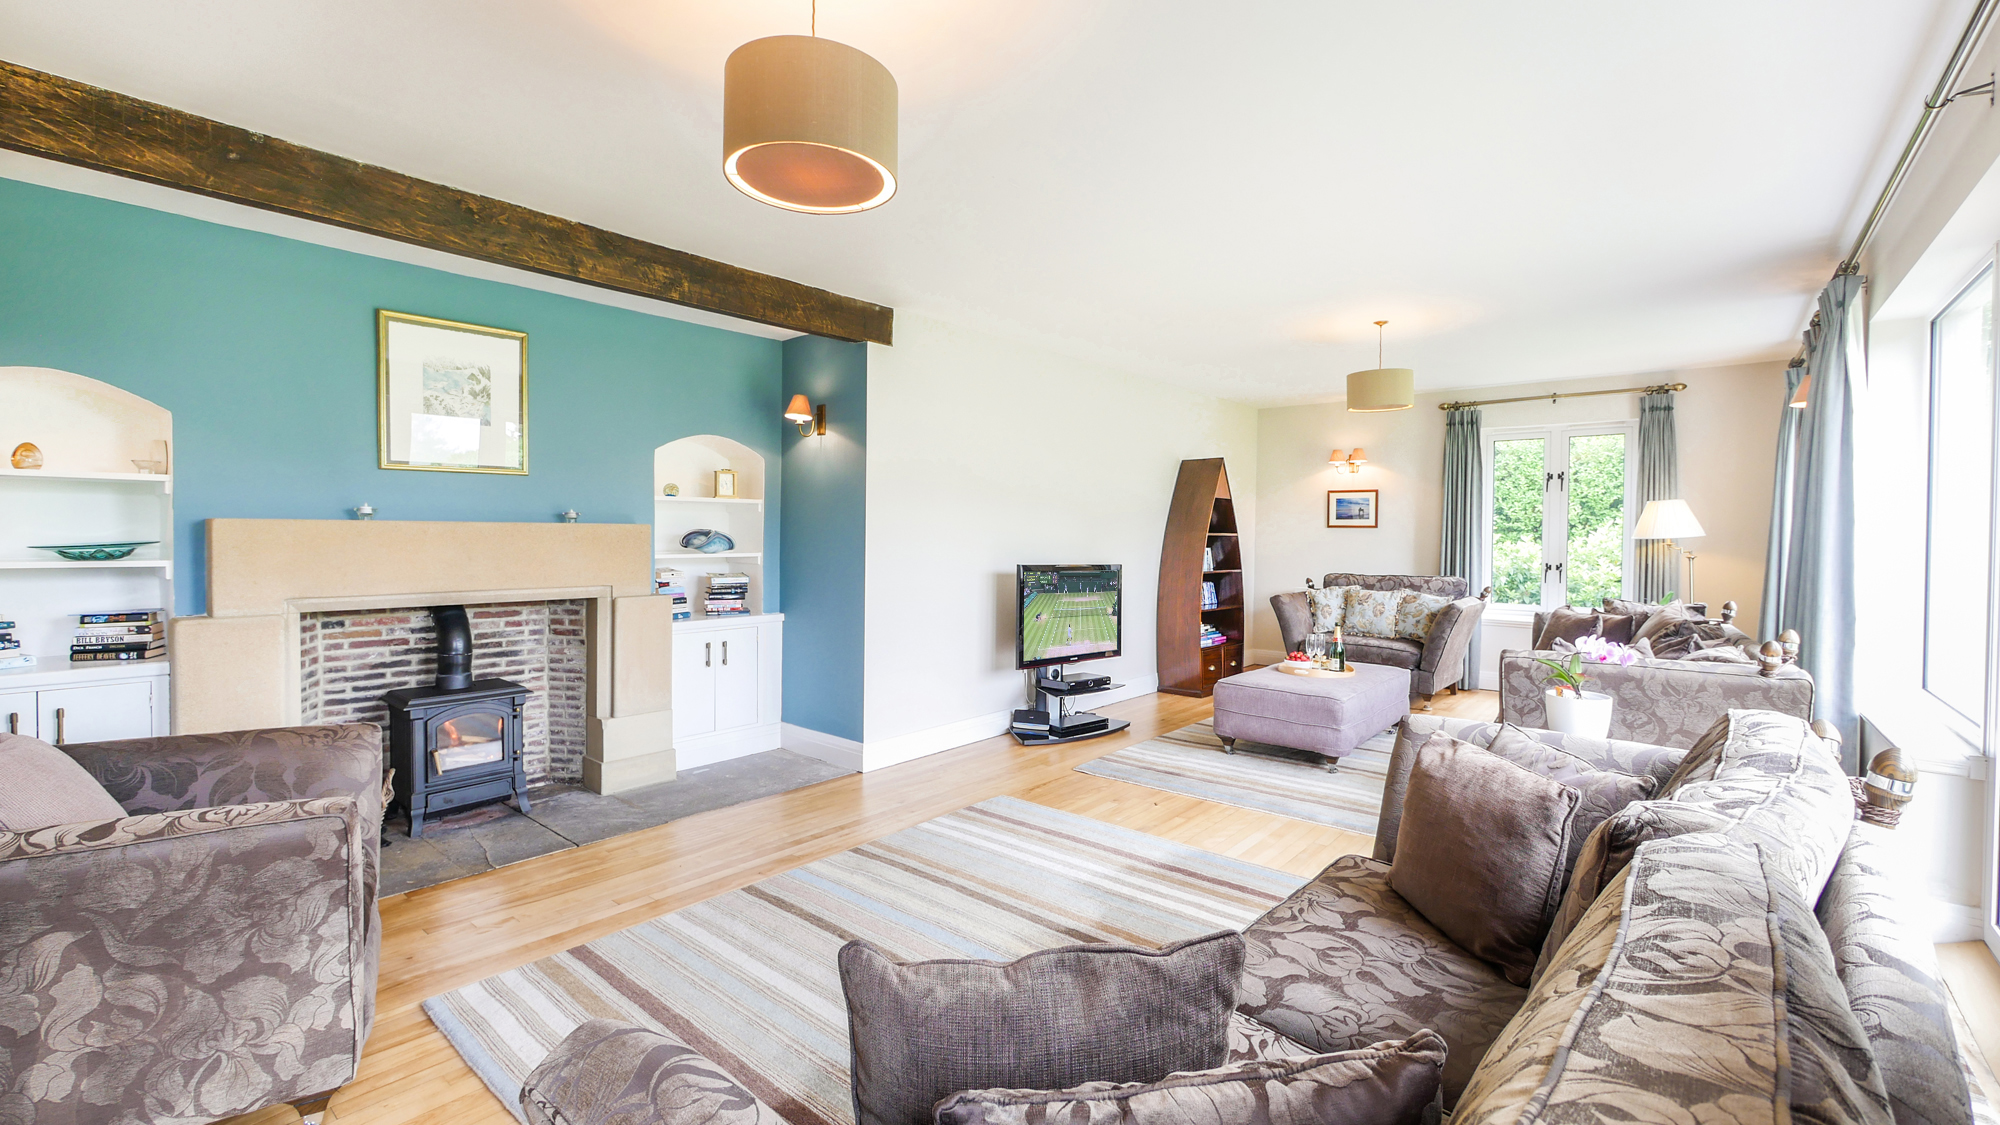 luxury holiday homes in Northumberland for 10 people, large luxury holiday cottages in Alnmouth walking distance to the beach